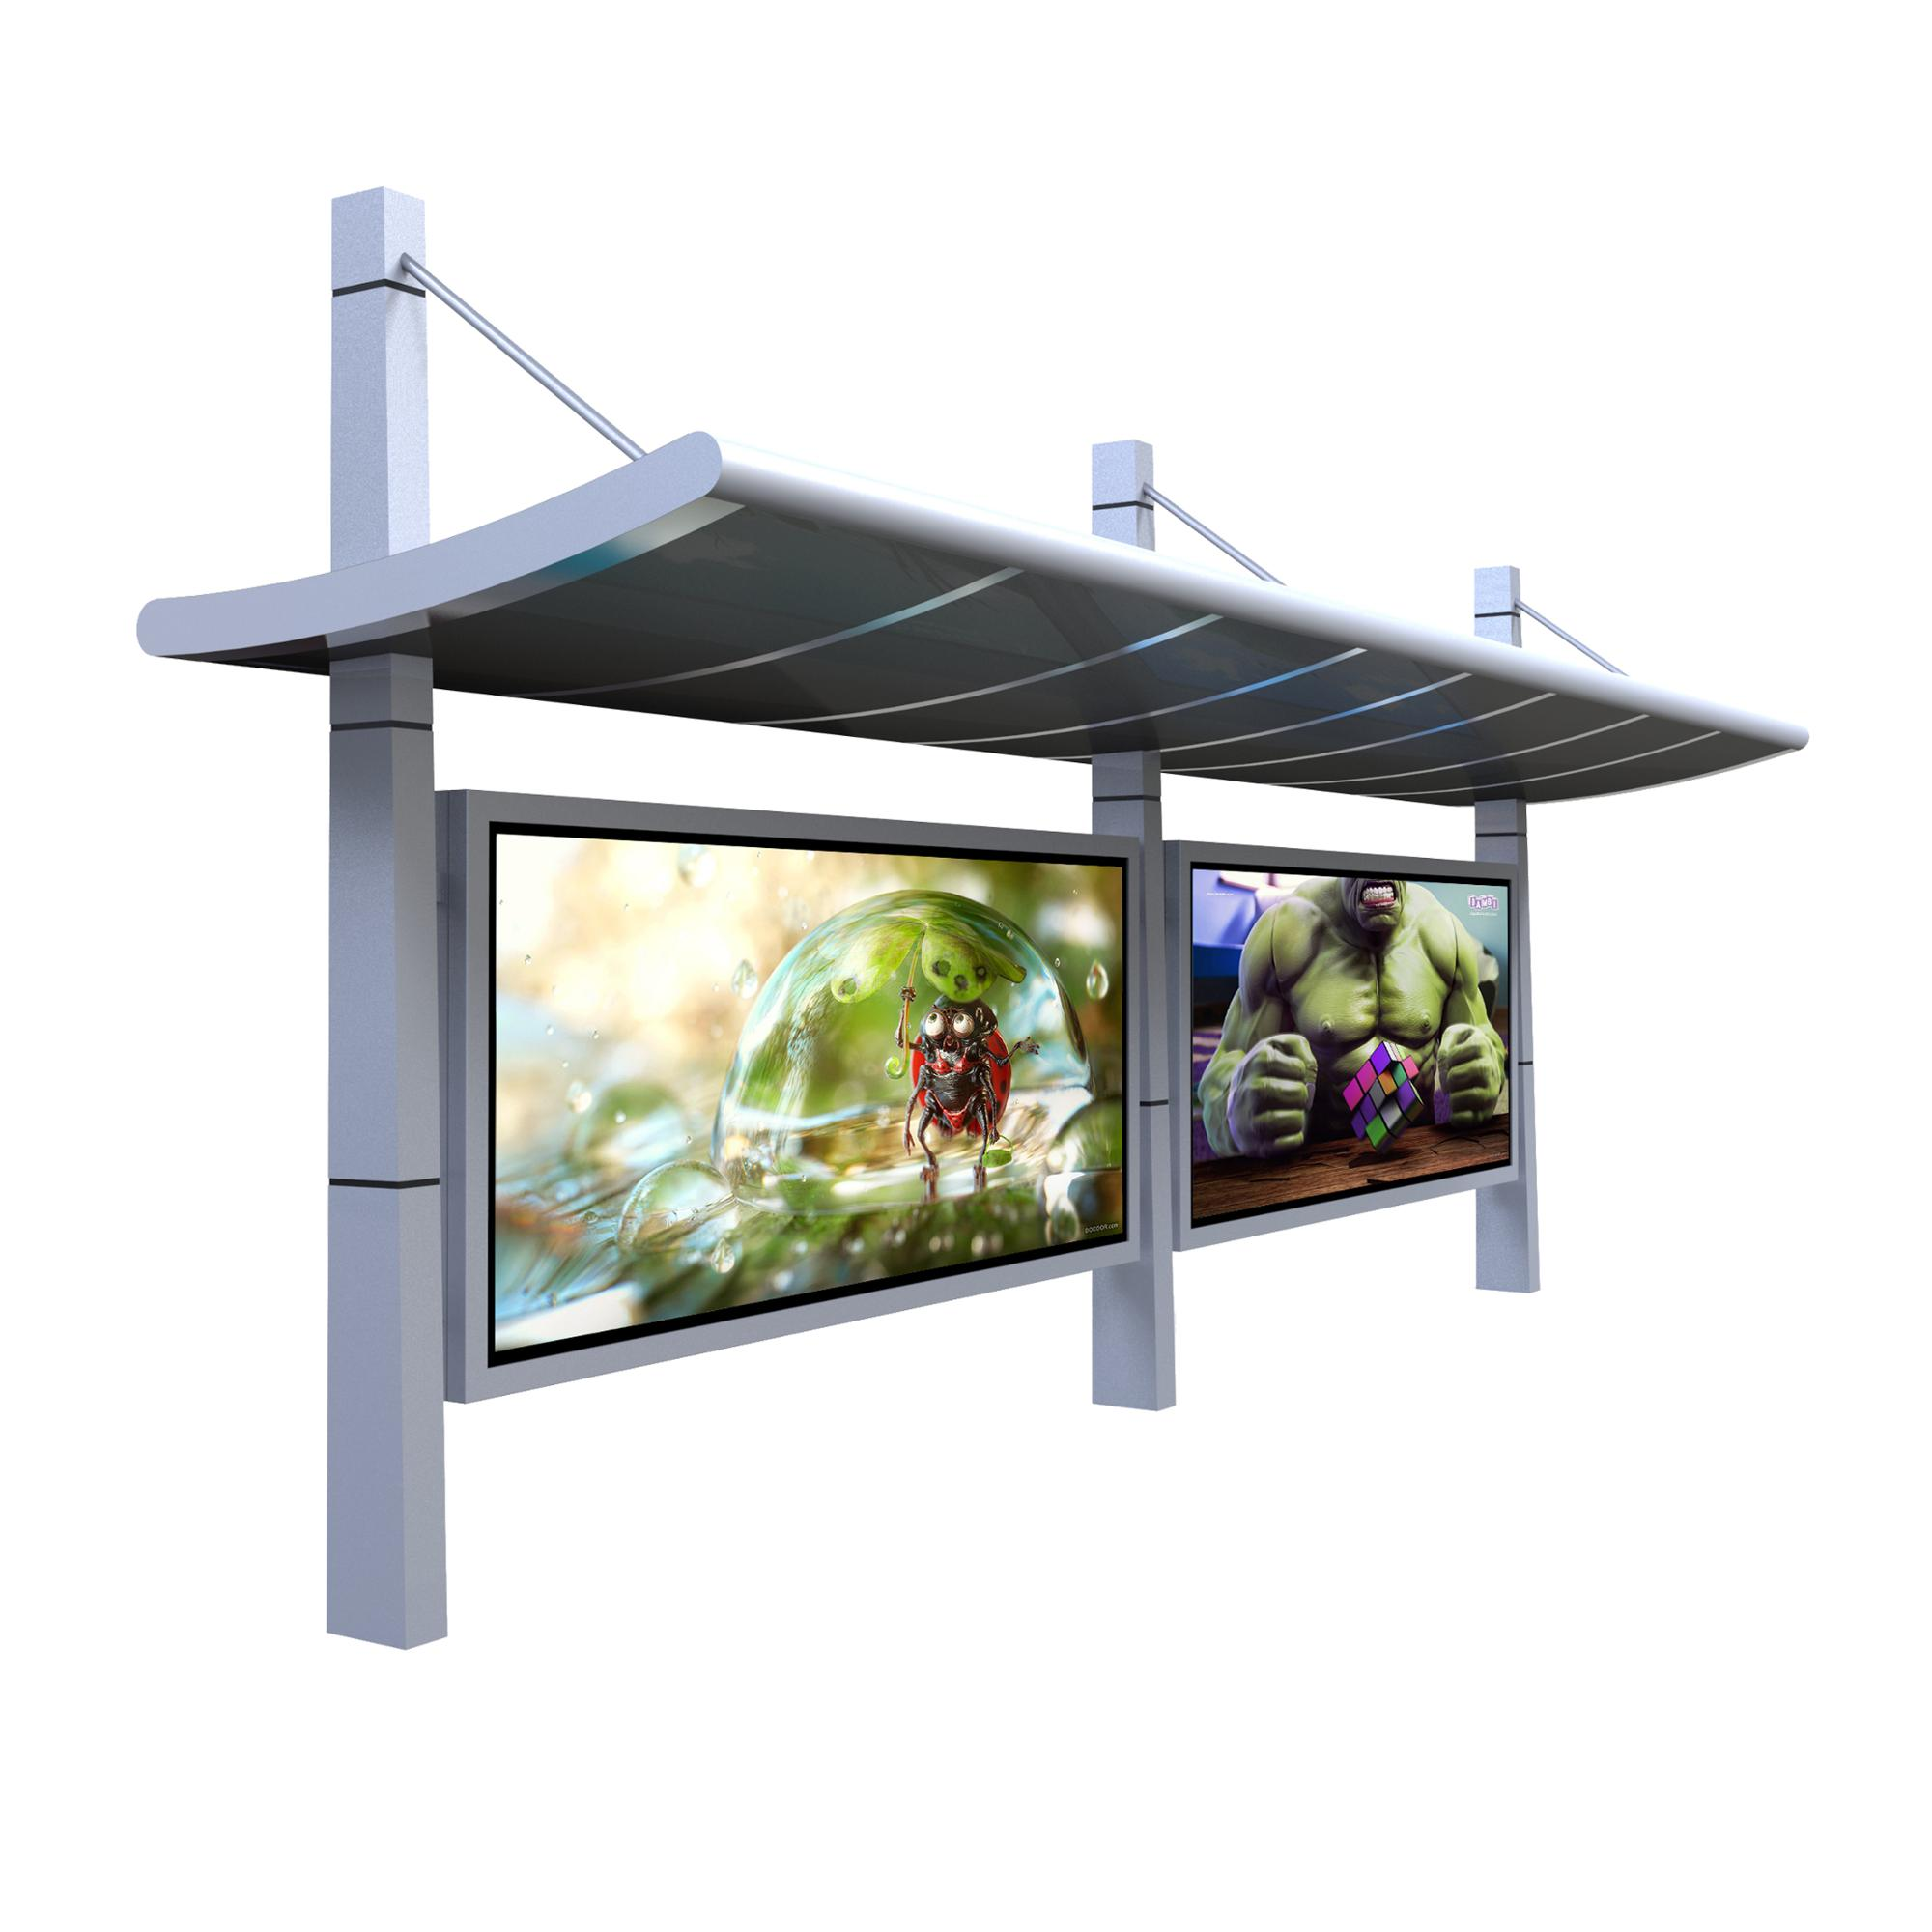 product-YEROO-Small-scale bus waiting shed solar powered bus stopshelter-img-3